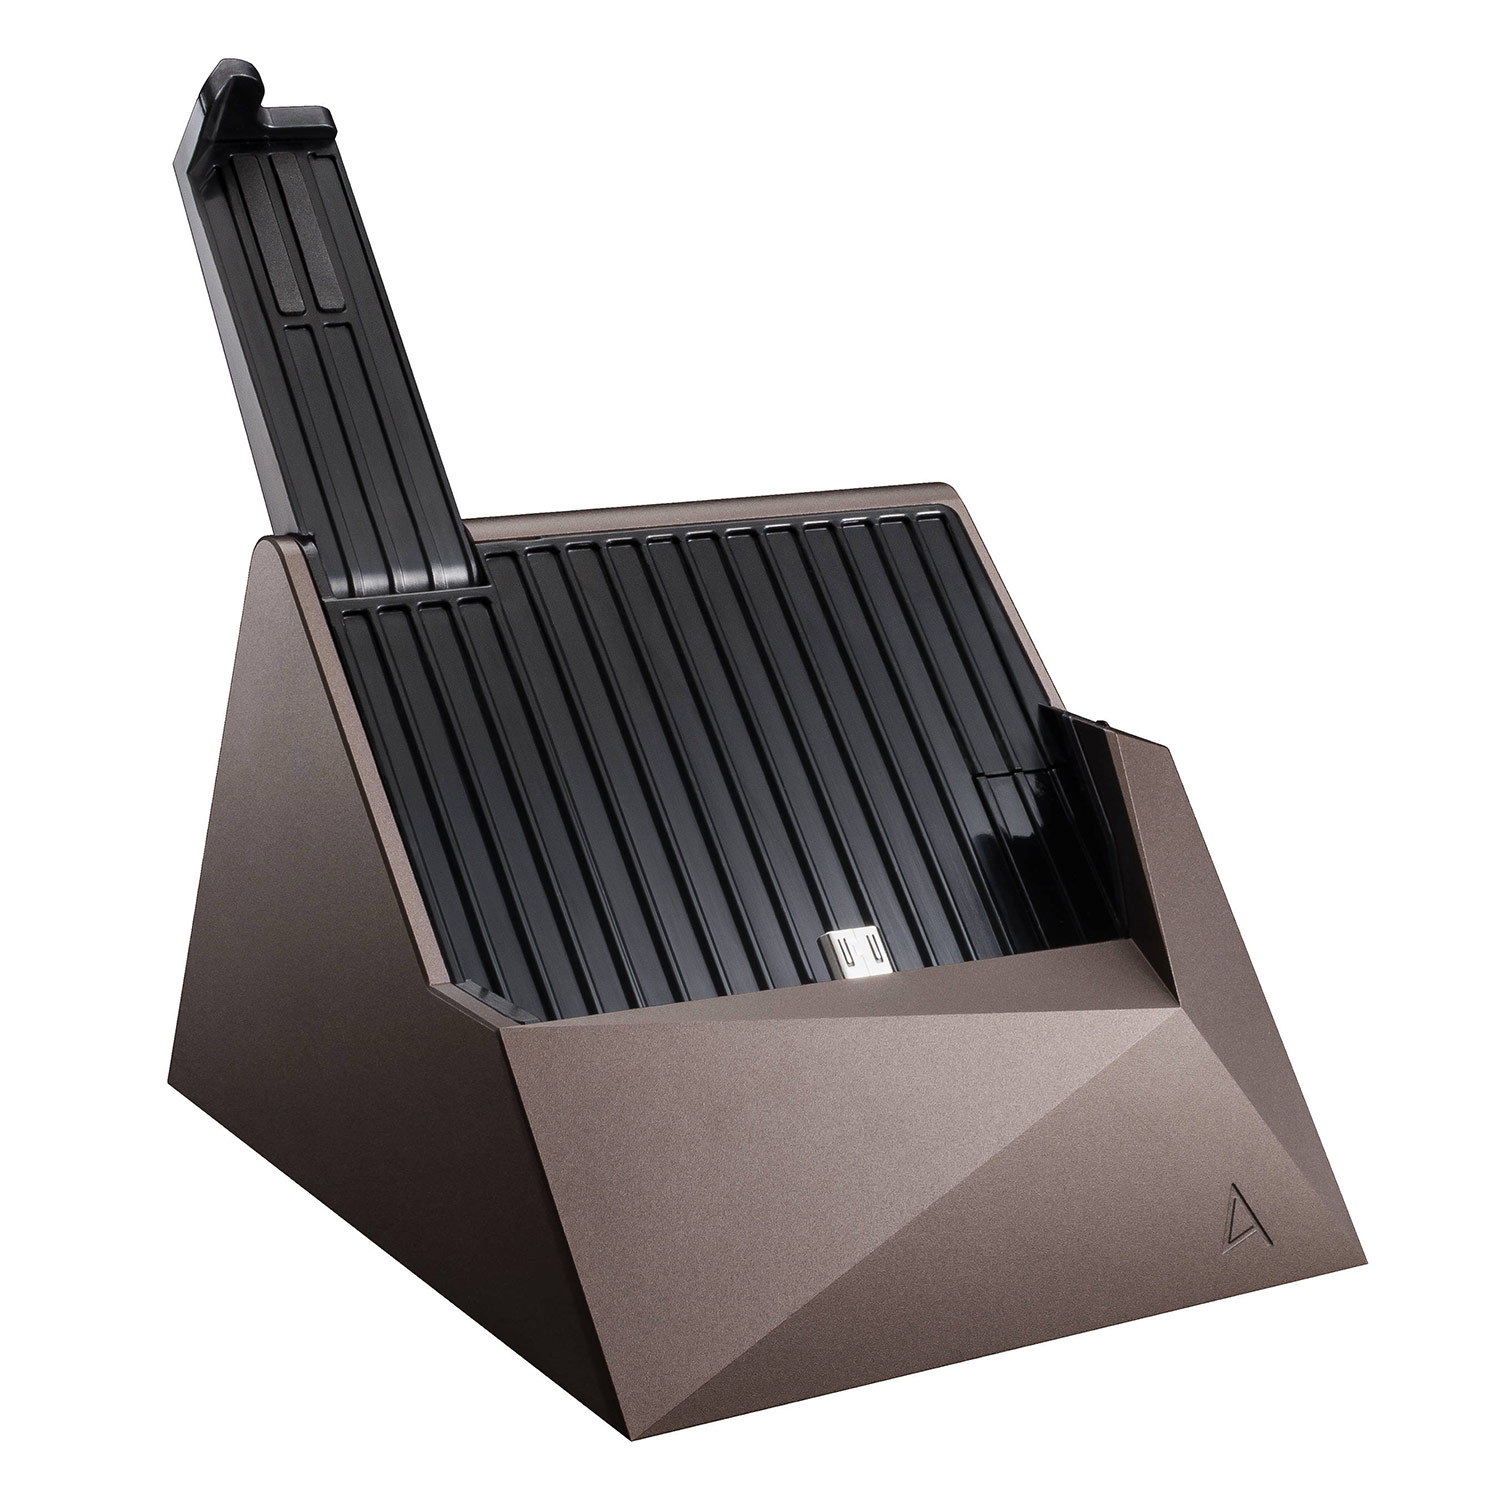 Dock Astell & Kern AK380 Docking Stand